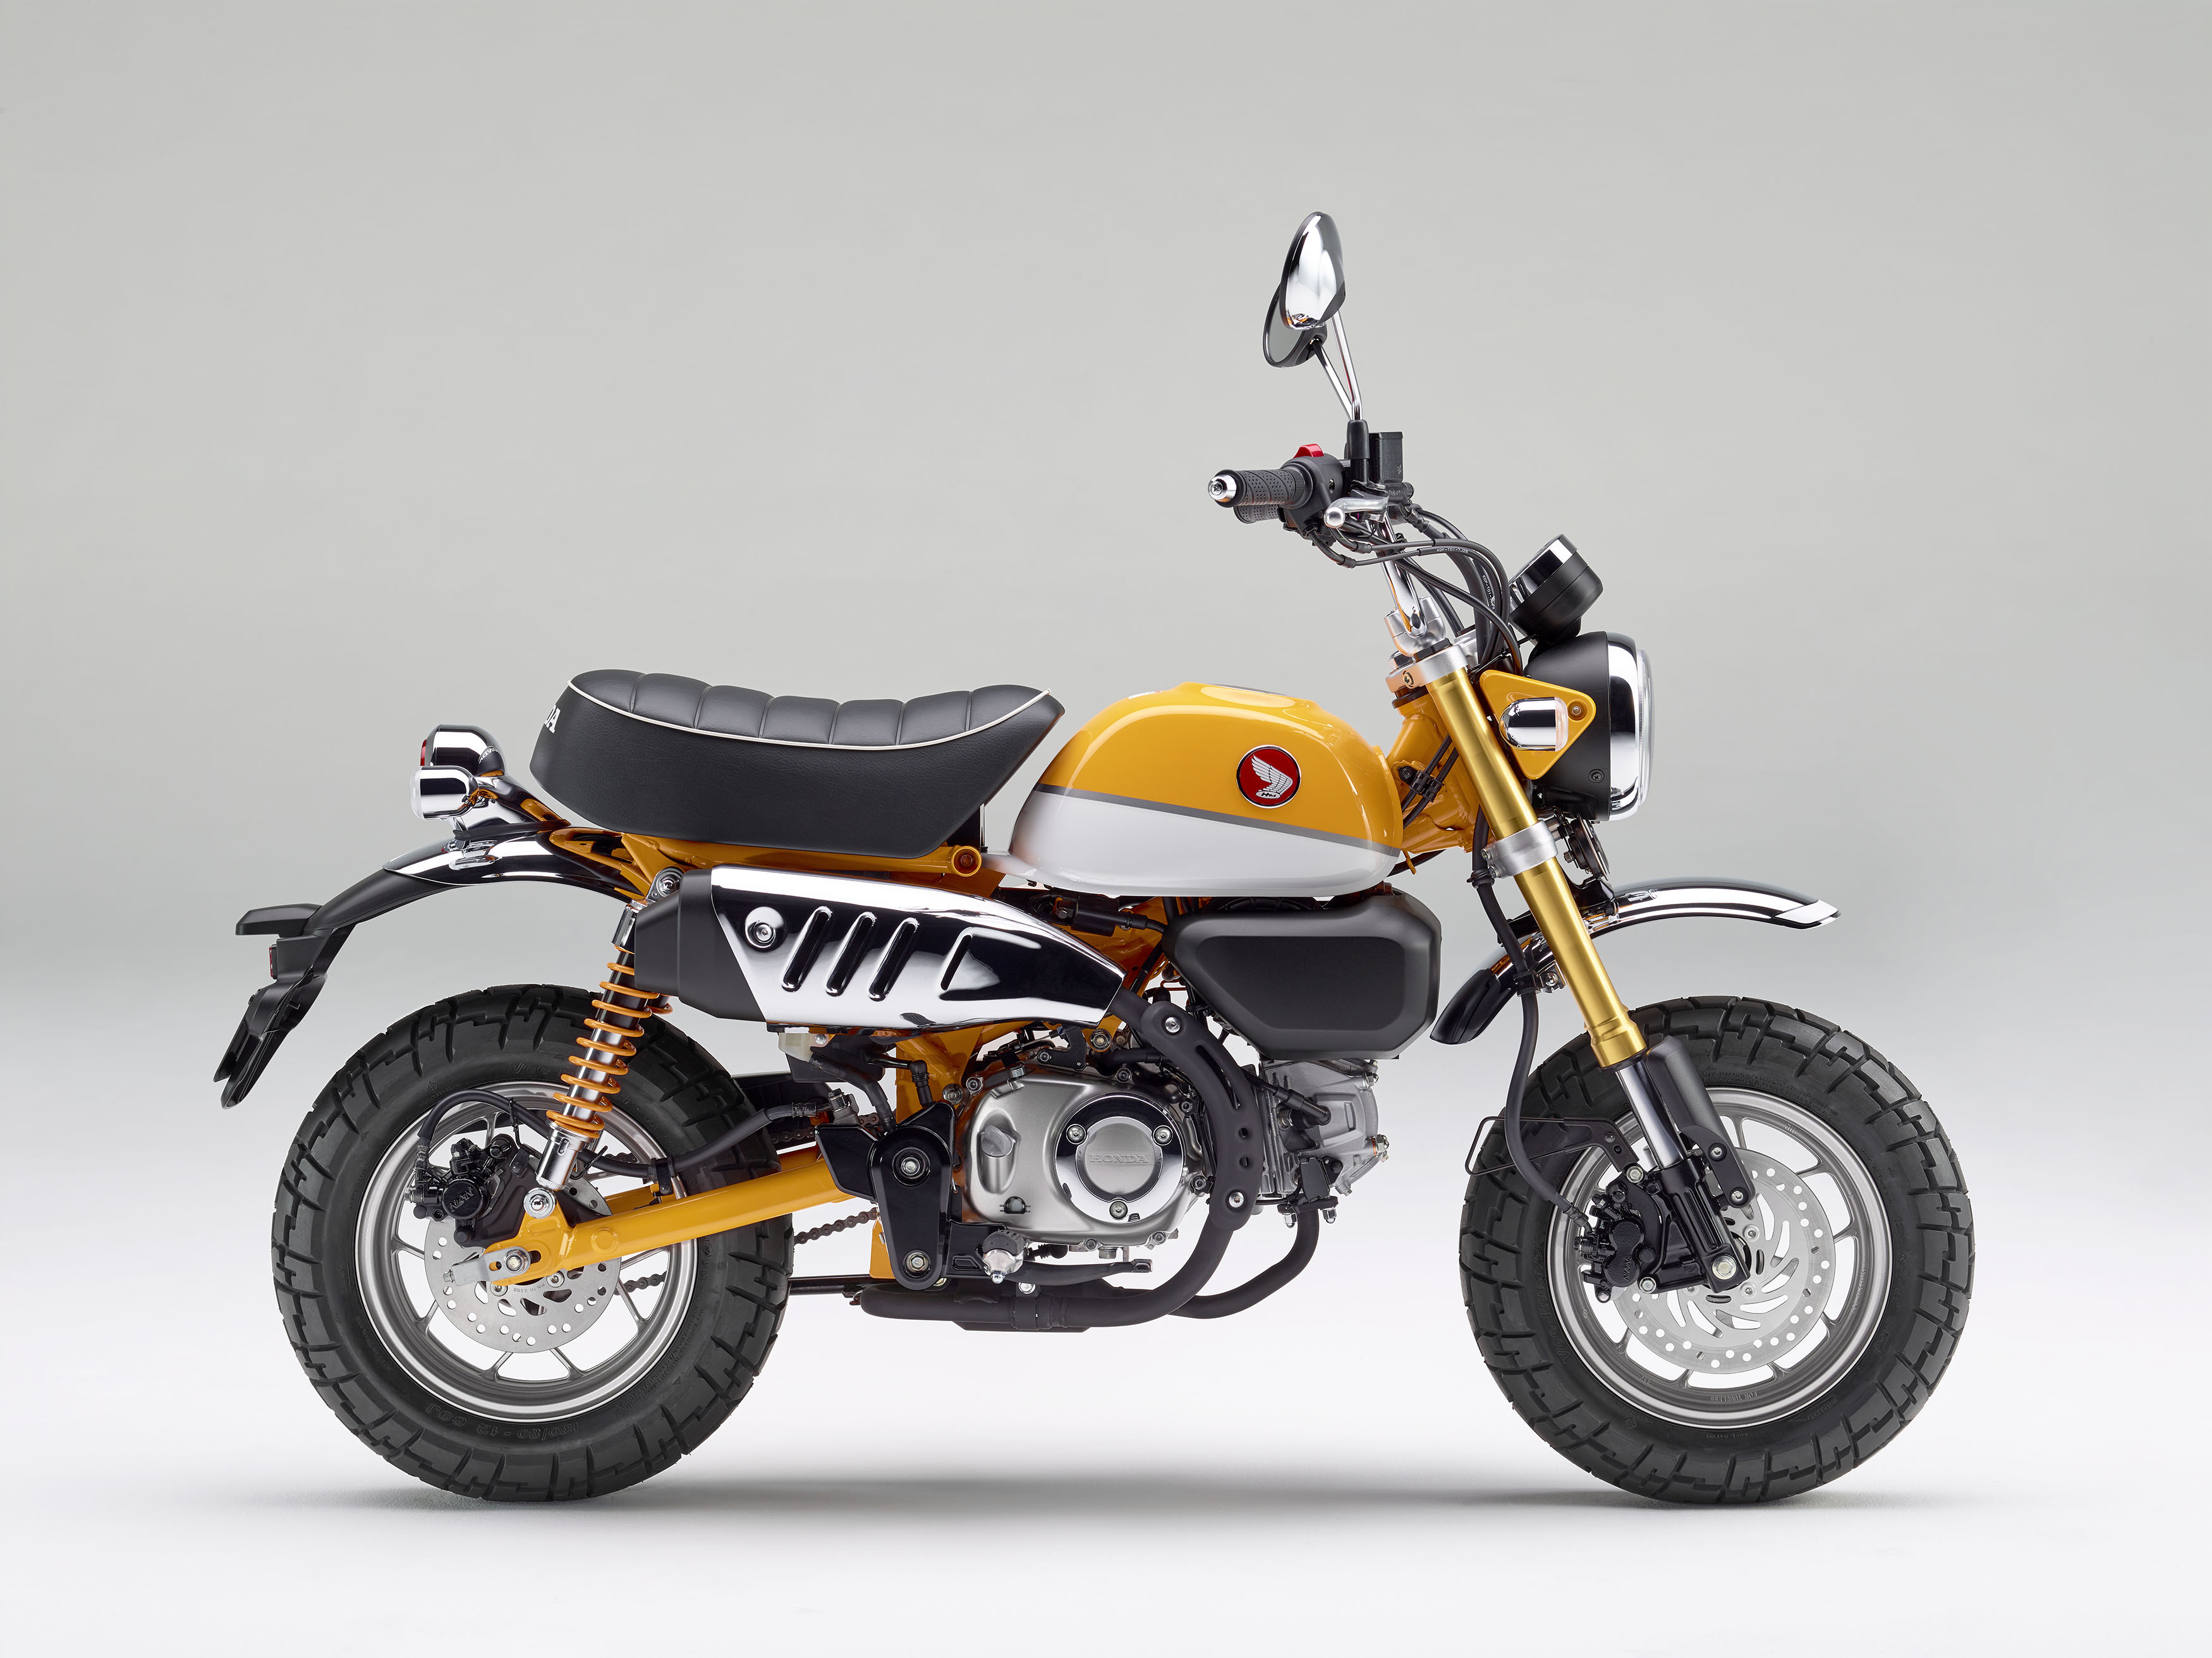 2019 Honda Monkey banana yellow